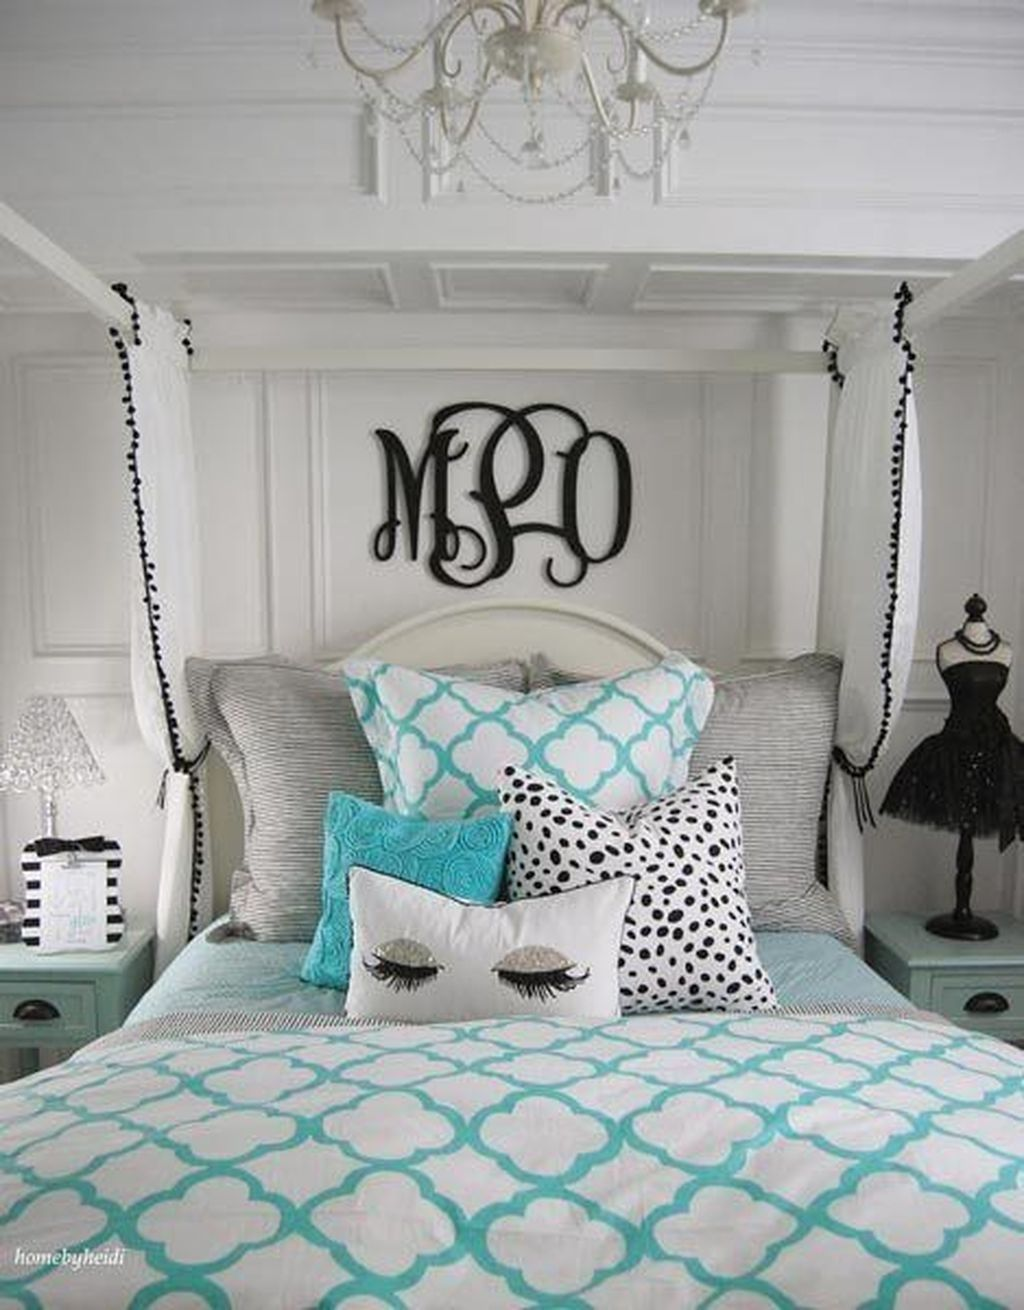 44 Cute Teen Girl Bedroom Ideas images